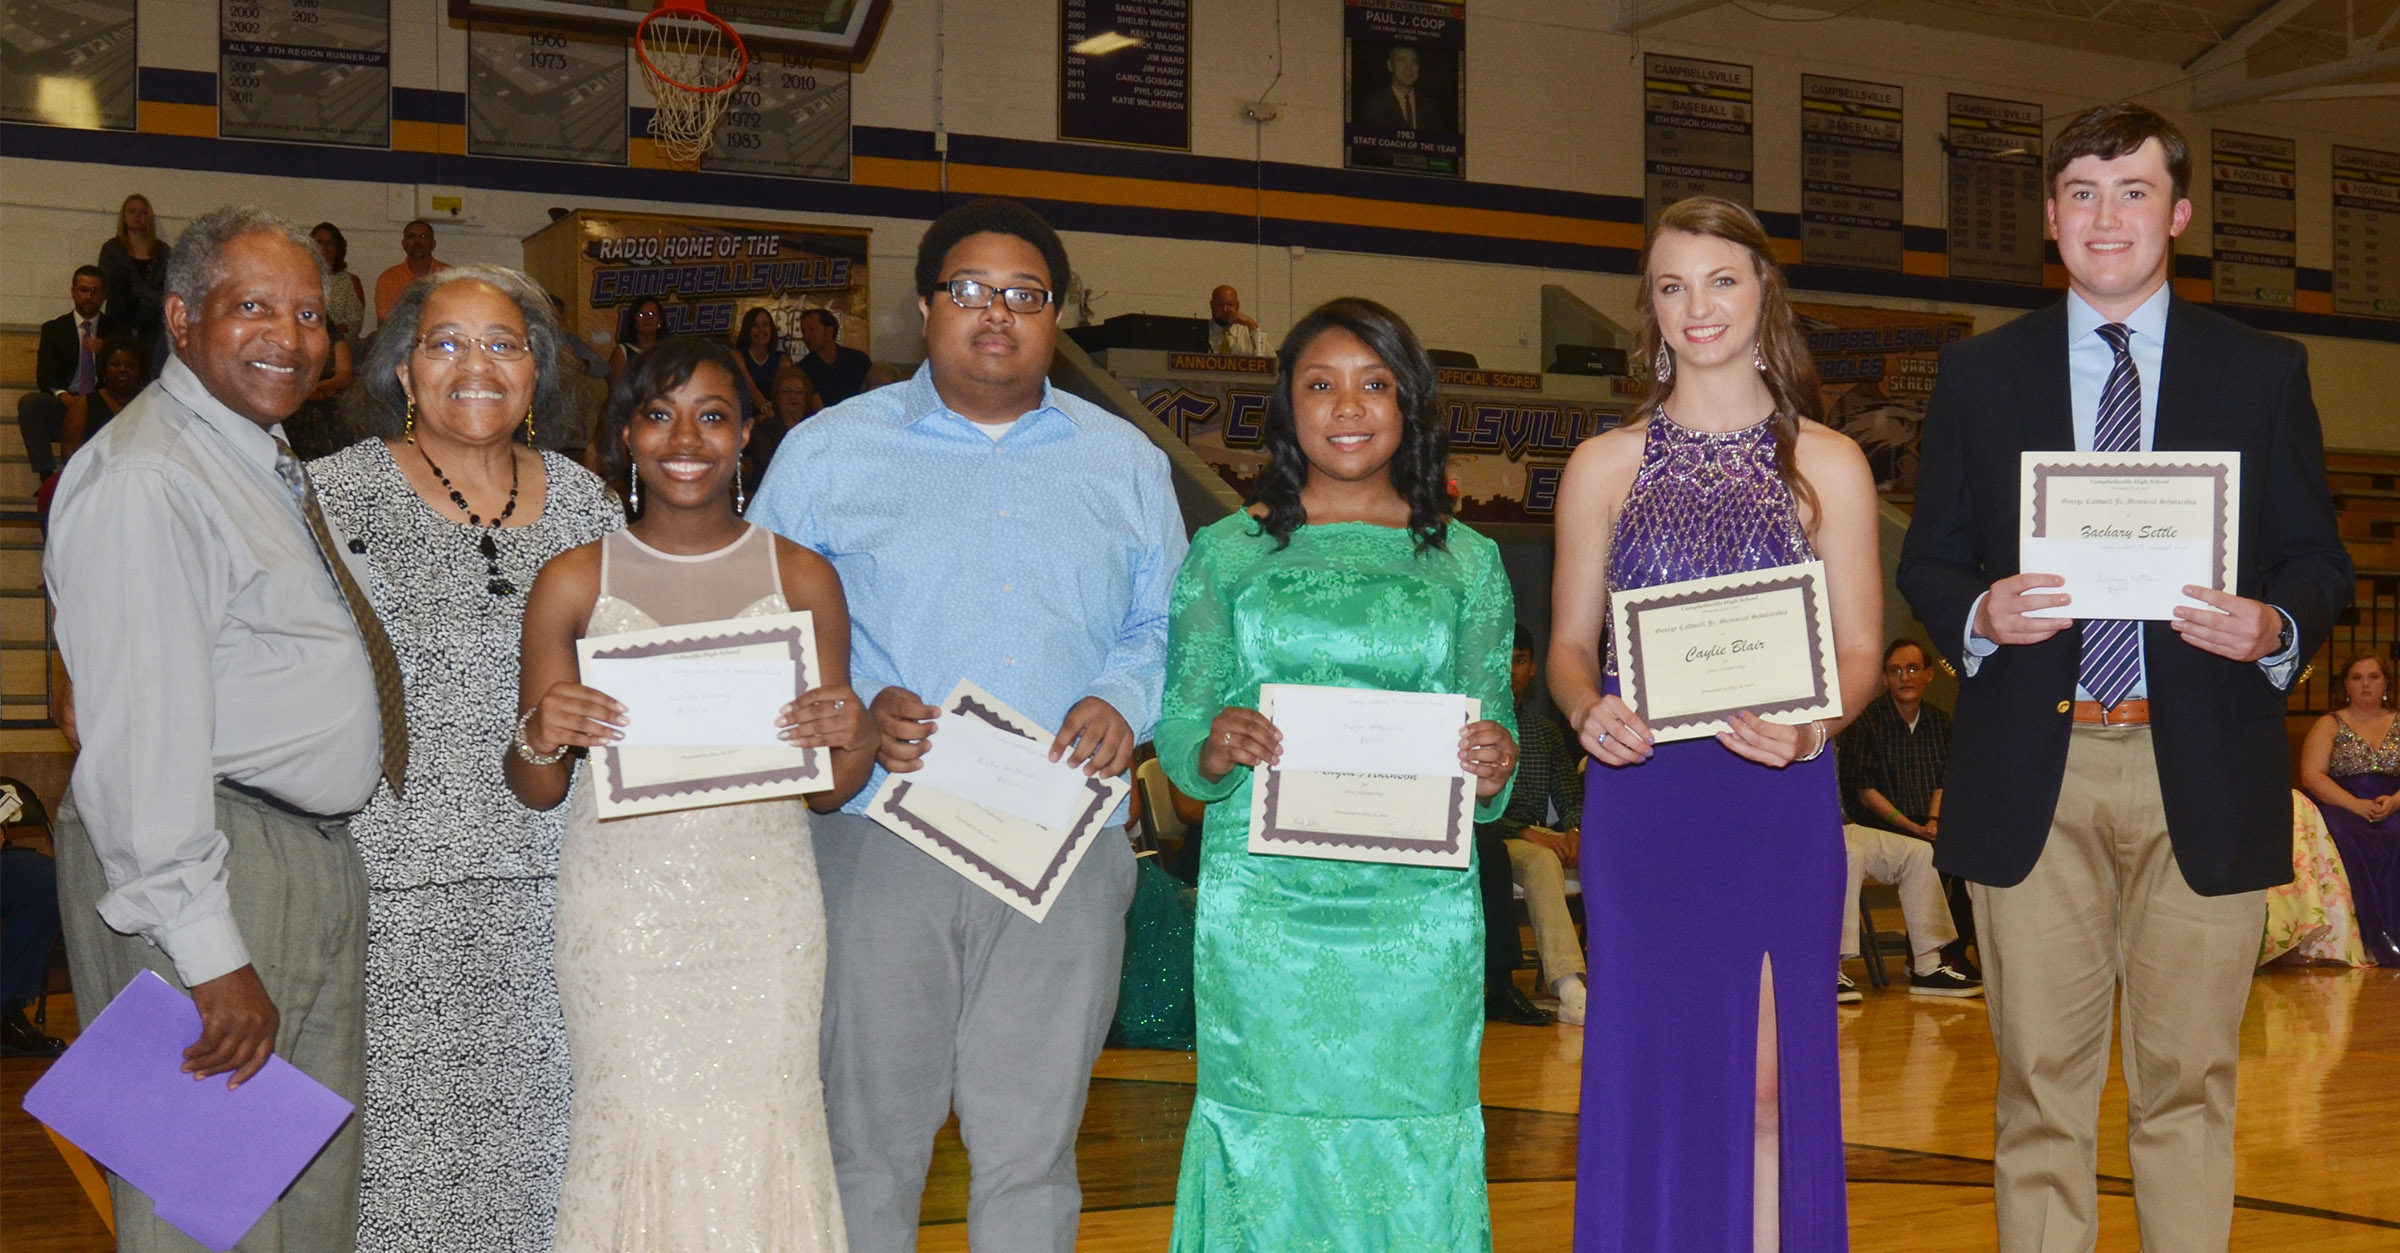 Receiving the George Caldwell Jr. Memorial Scholarship from Michael Caldwell and Rose Jones, at left, are, from left, Latavia Shively, Ricky Smith-Cecil, Kayla Atkinson, Caylie Blair and Zack Settle.